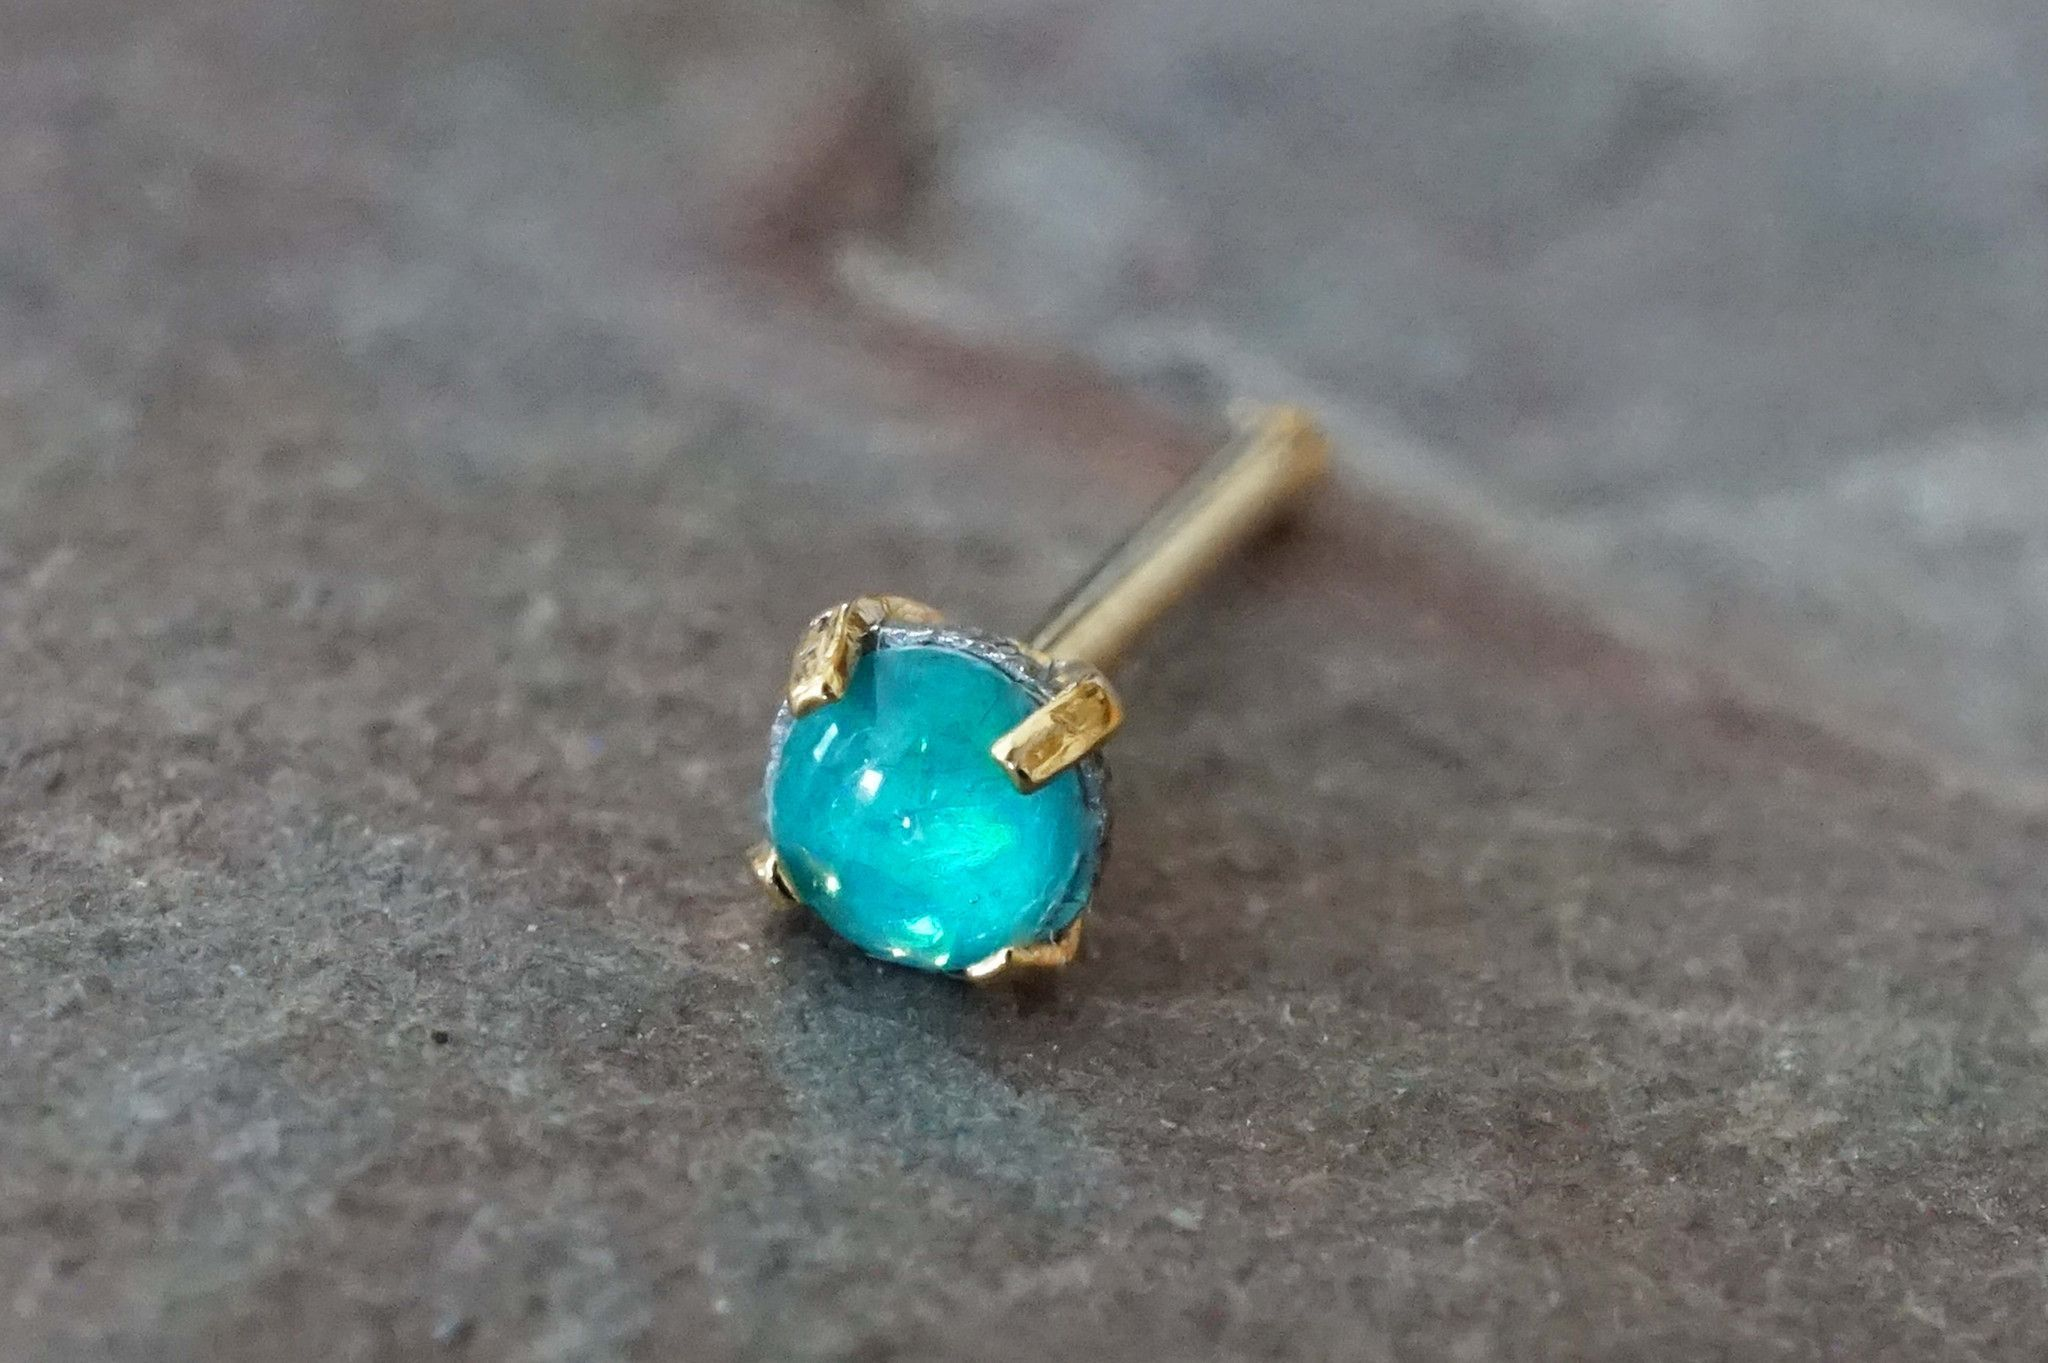 "Teal opal gold nose ring. Tiny gold nose stud with a 2mm prong set teal opal gem. 20 gauge nose ring, 1/4"" long post, made of 316L surgical steel plated gold with a tiny synthetic teal opal stone is d"